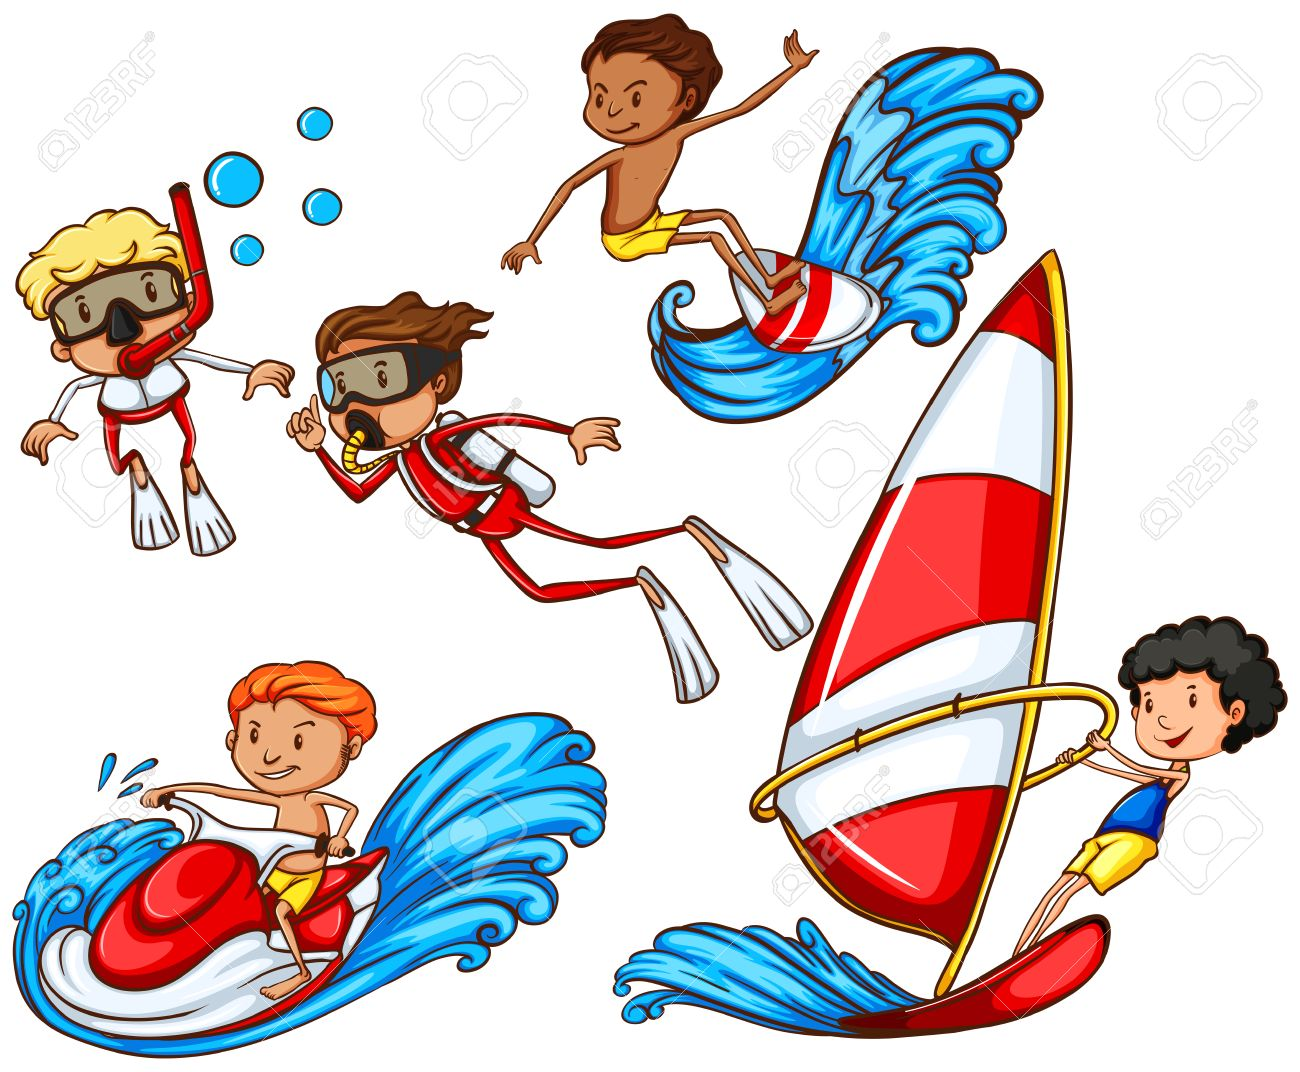 1300x1072 A Drawing Of A Group Of People Doing Watersports On A White